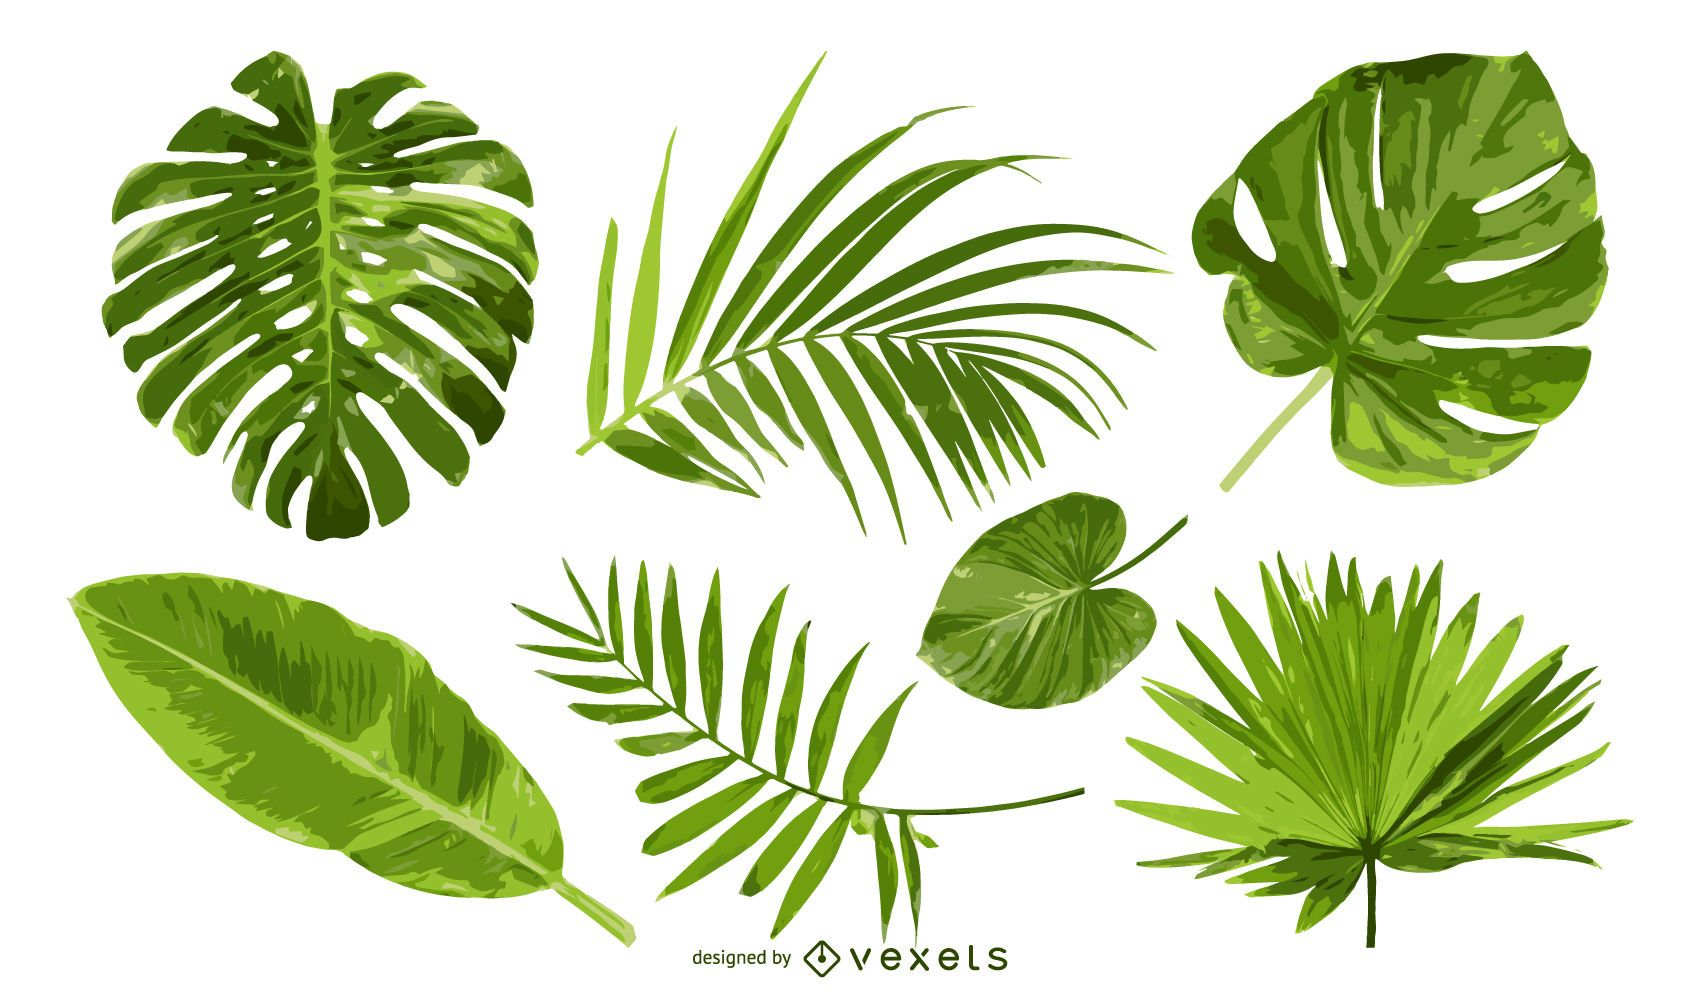 Isolated palm tree leaves set vector download - Plantas de hojas verdes ...